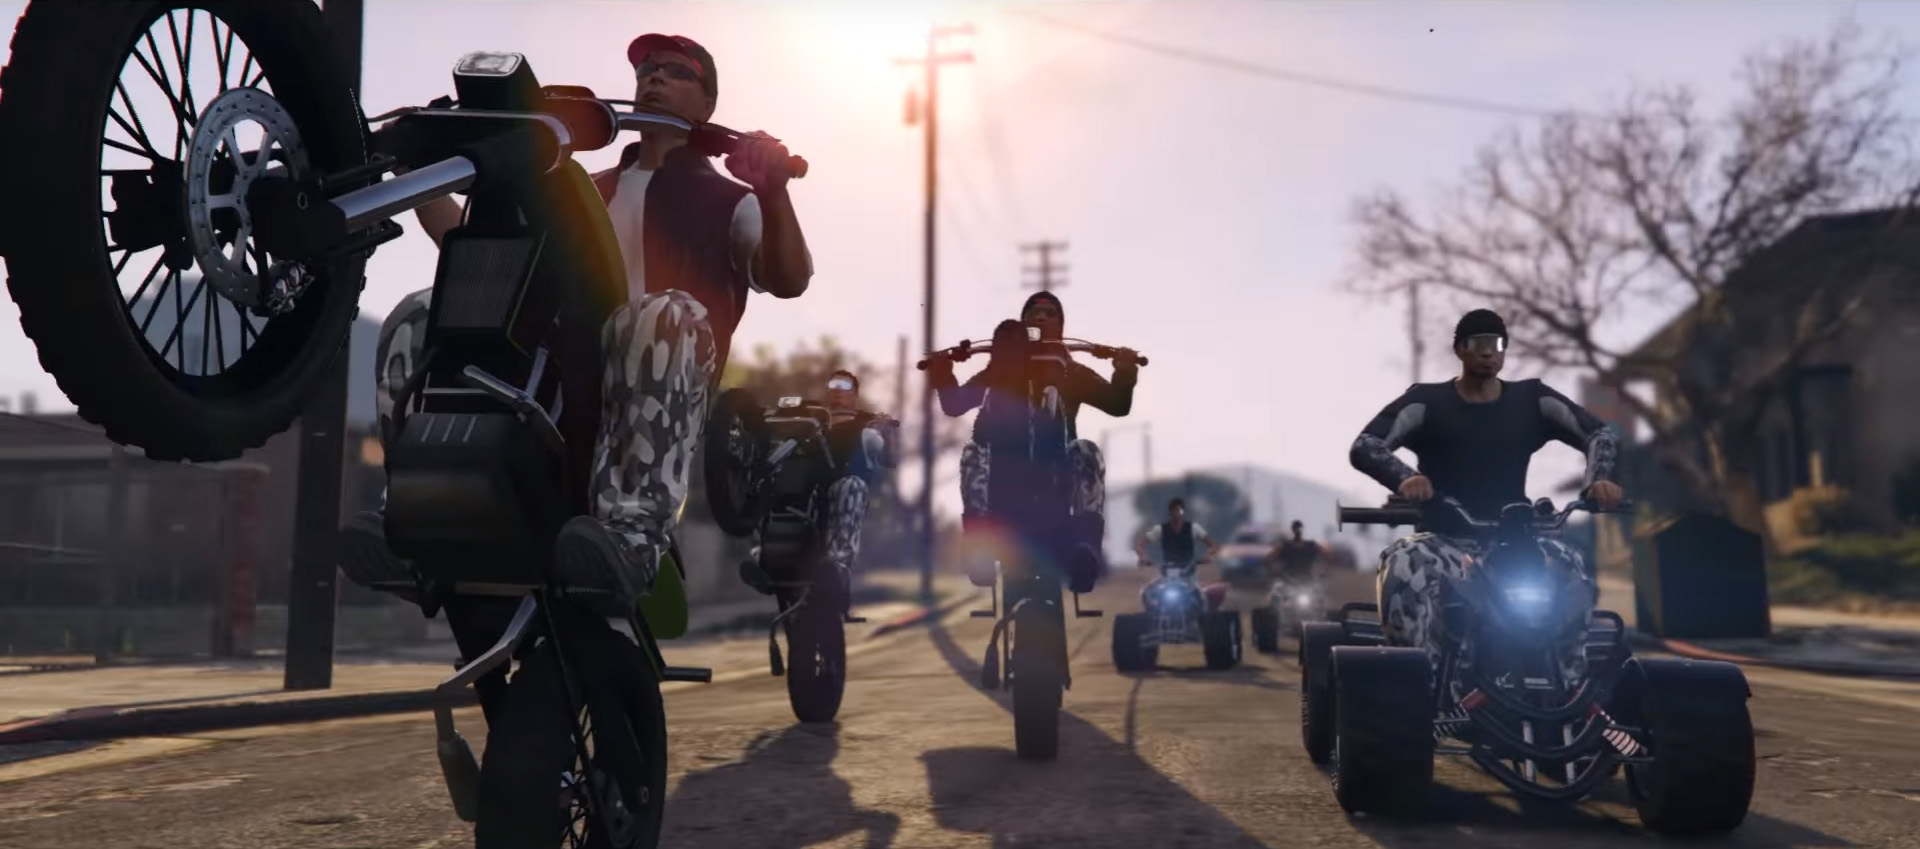 Grand Theft Auto Online Wants You to Live the Life of a